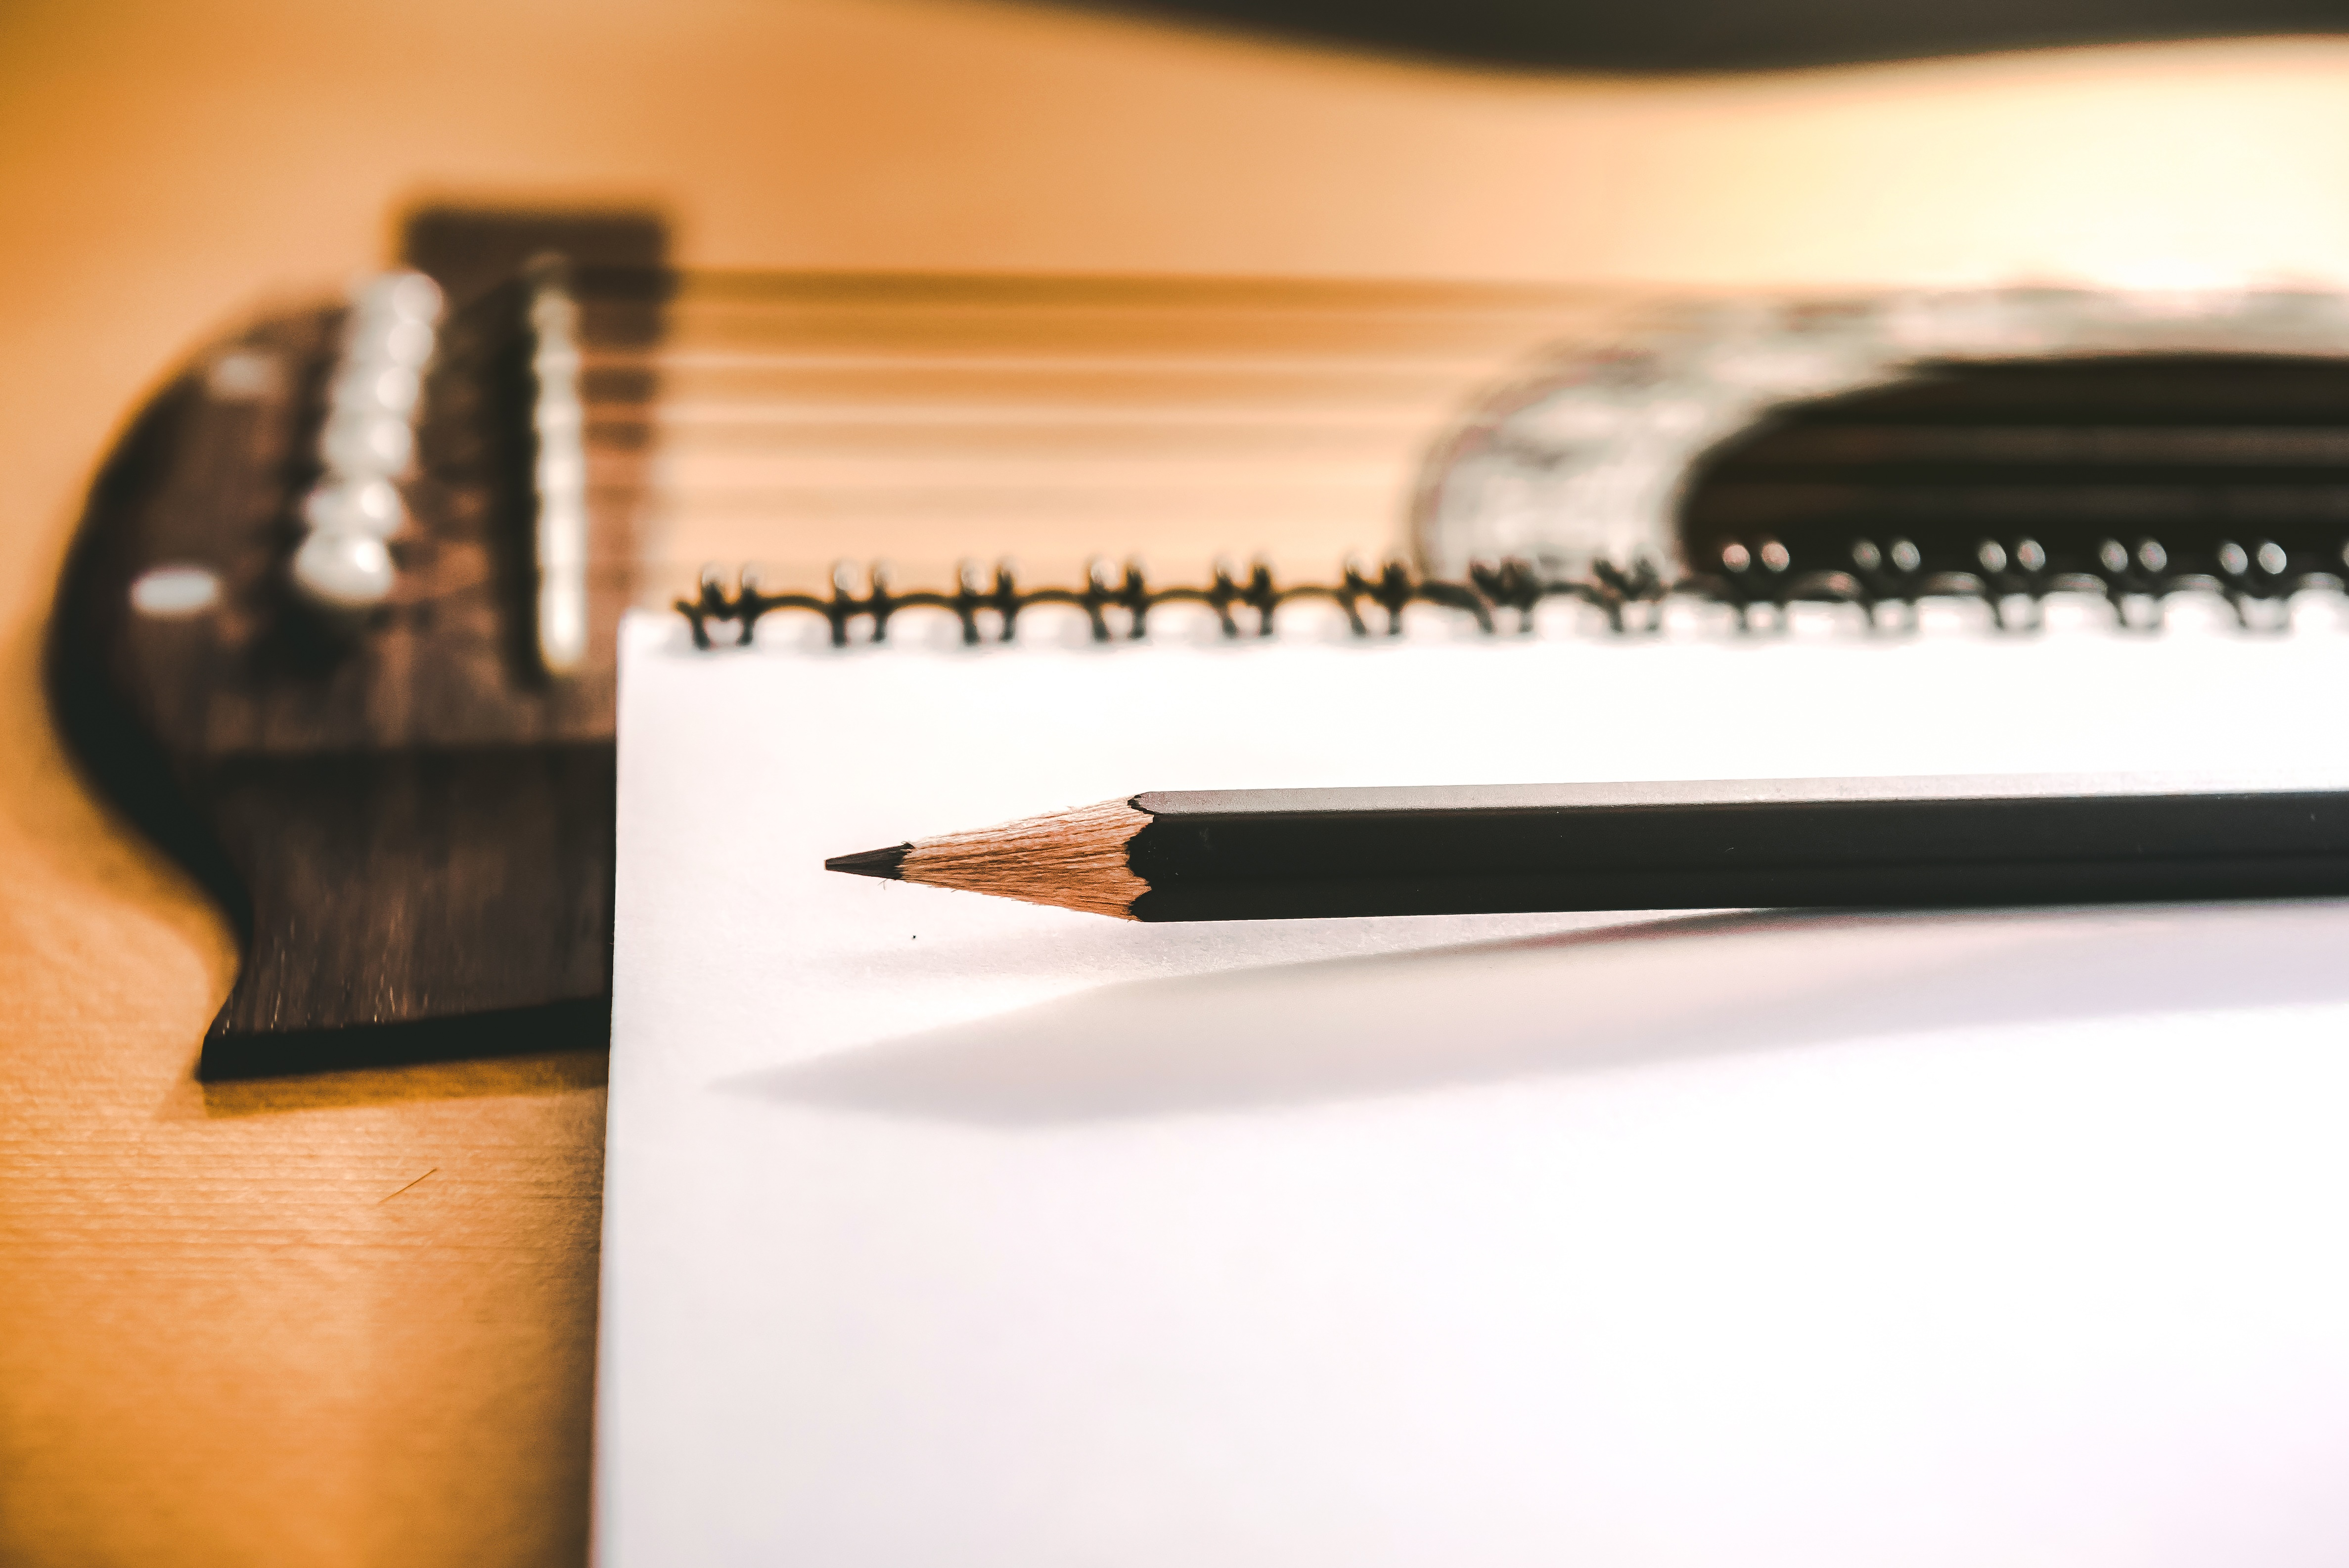 Close-up of a clean white notebook with a freshly sharpened black pencil siting on top of an acoustic guitar.